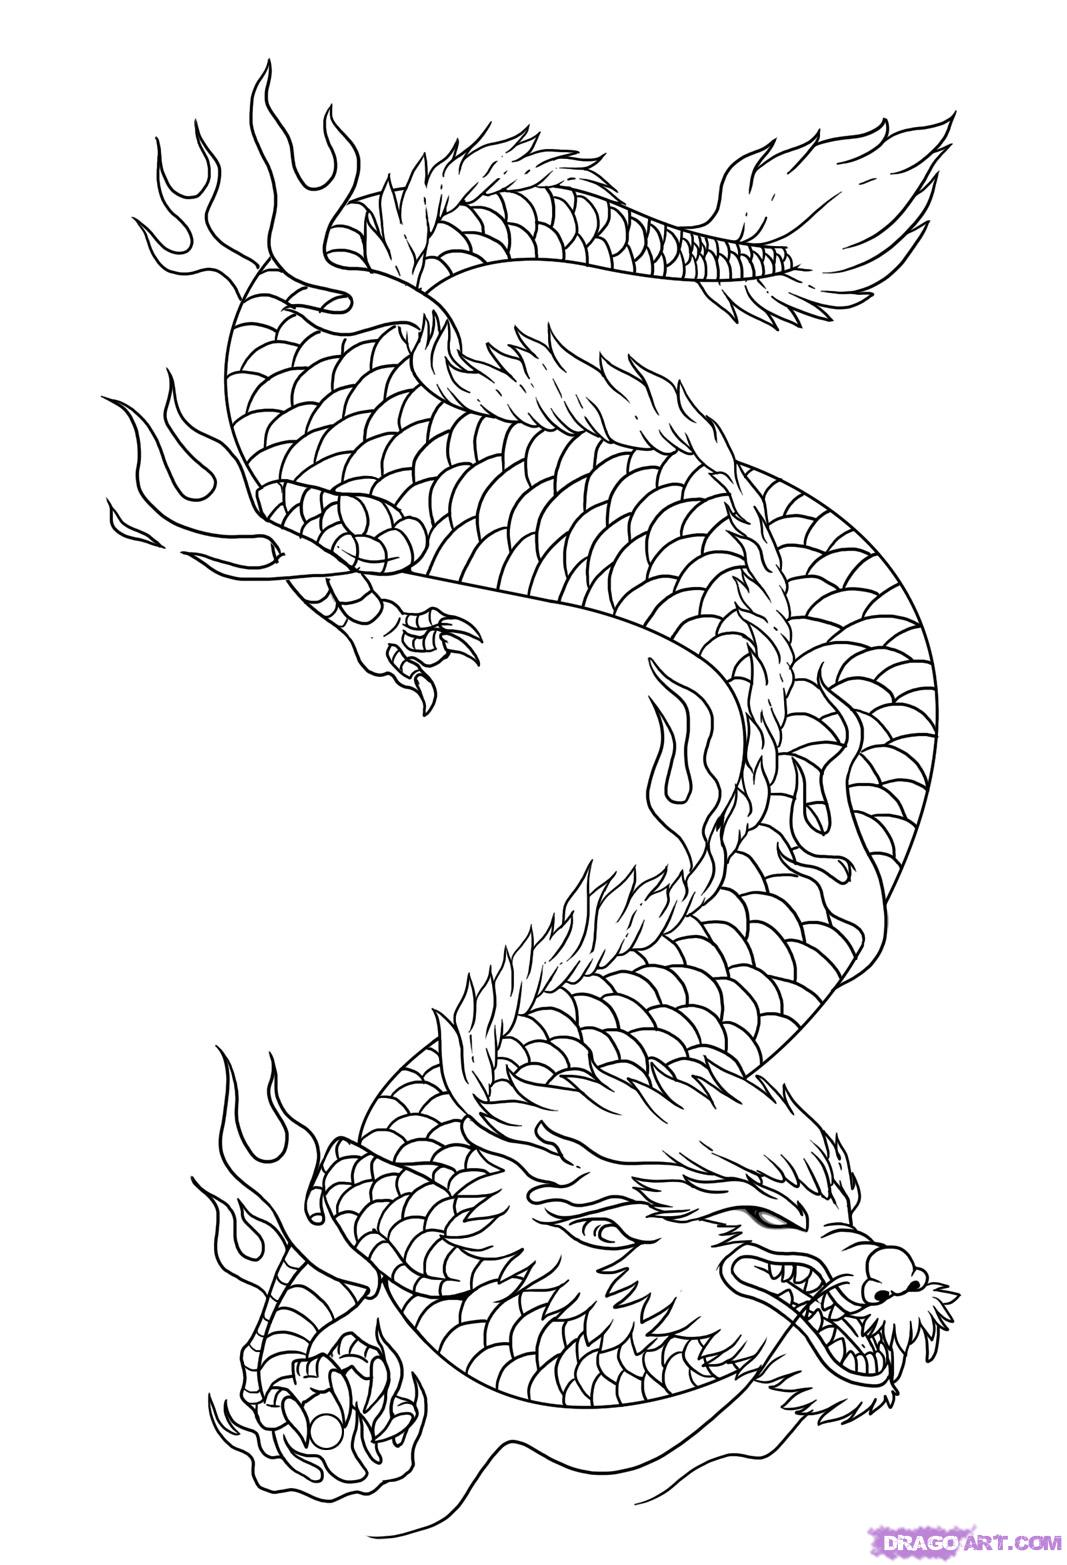 1067x1565 How To Draw A Chinese Dragon Head